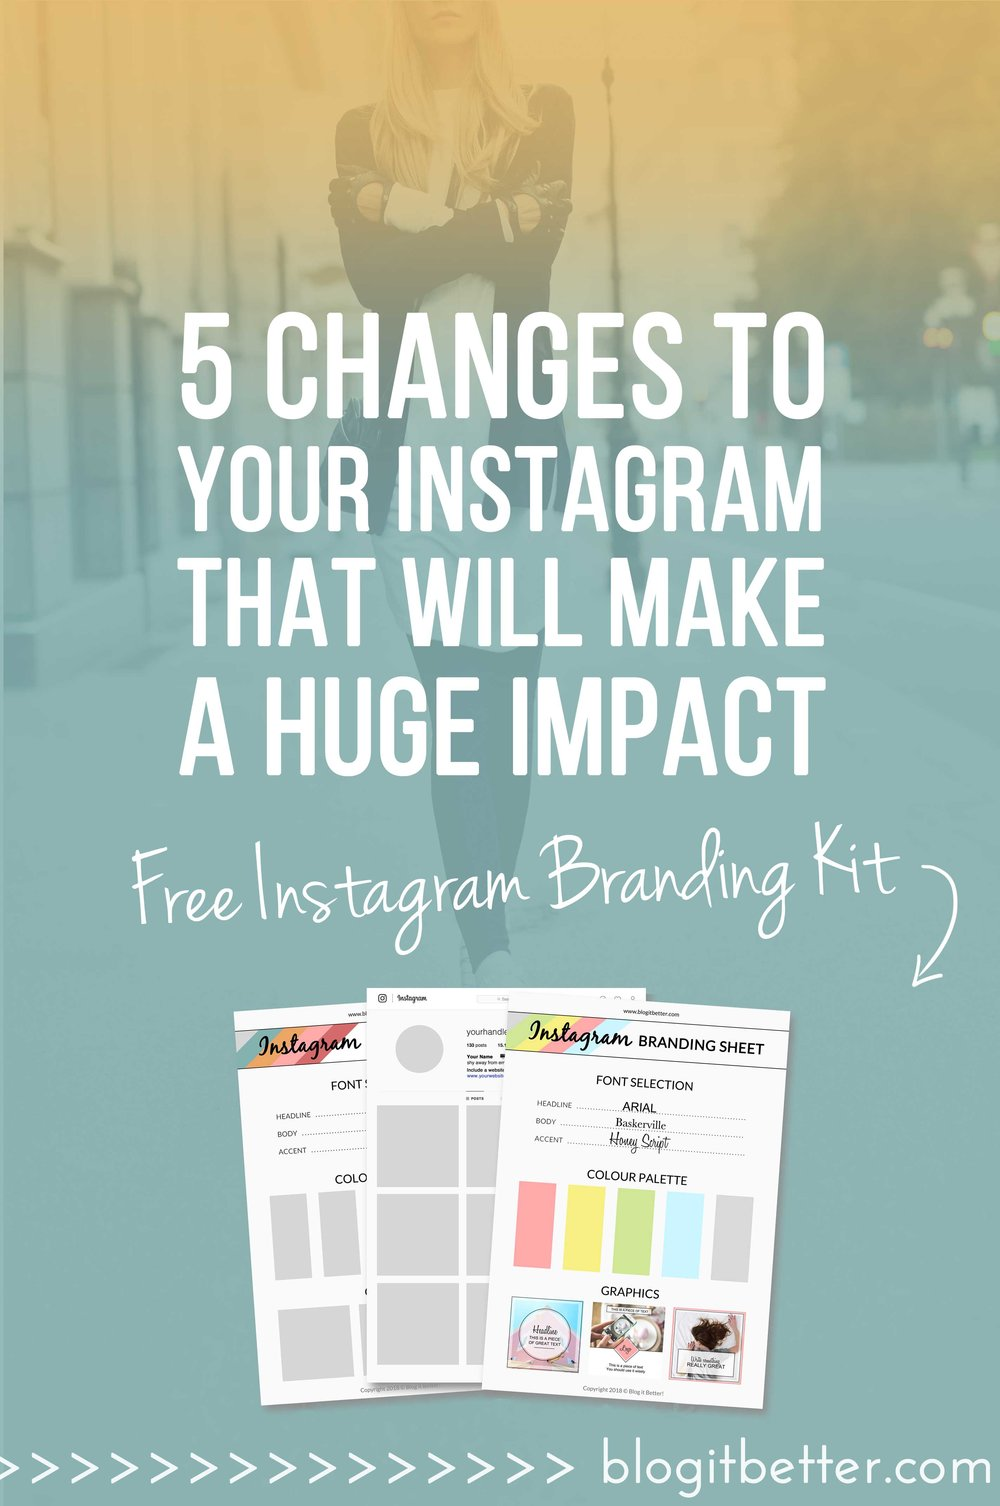 5 changes to your Instagram account that will make a huge difference and grow your following - Blog it Better! #instagram #socialmedia #instagramengagement #blogger #bloggingtips #socialmediatips #socialmediamarketing #instagramtips #howtouseinstagram #instagramforbusiness #instagramtraffic #blogitbetter #blogcoaching